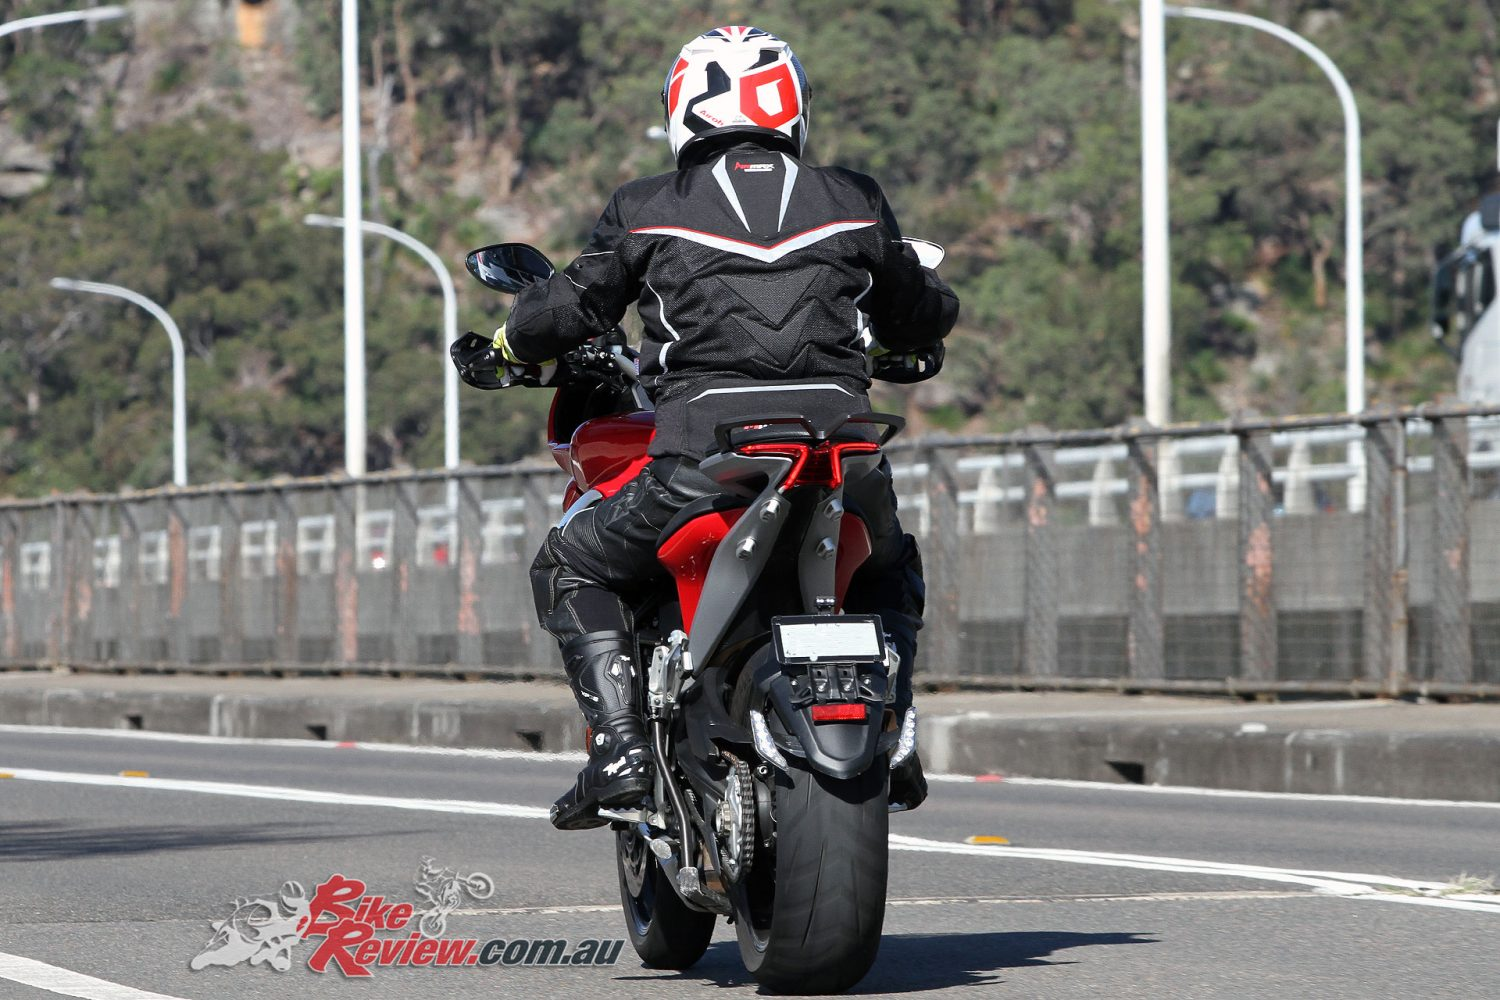 Simon wearing his Xpd XPS3 boots on the MV Agusta Turismo Veloce Lusso